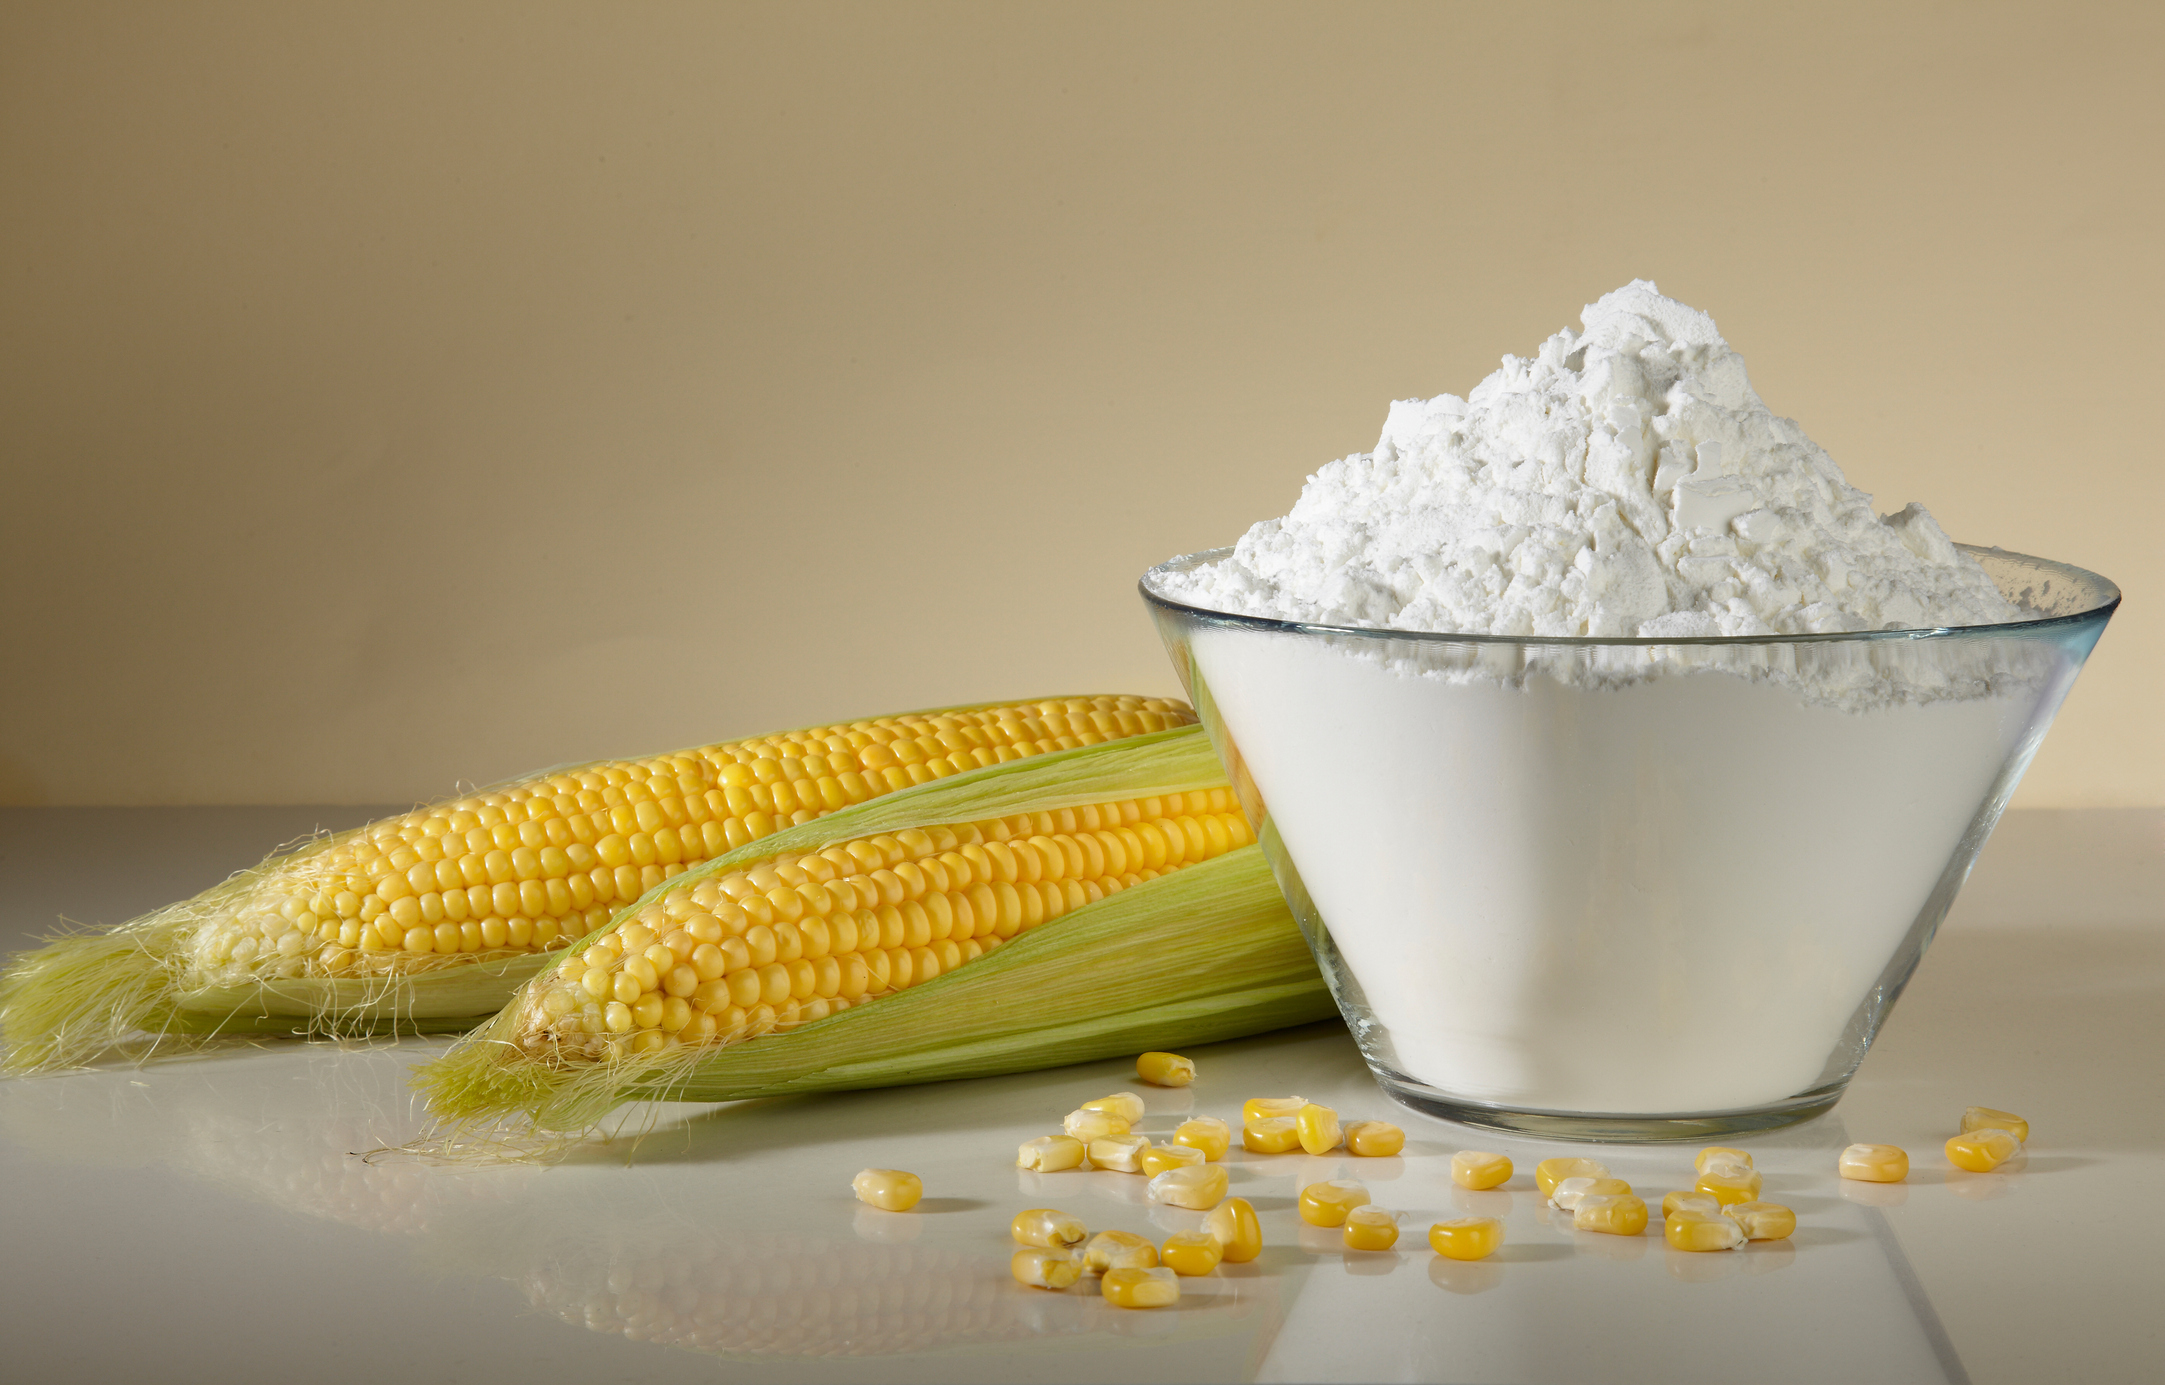 What Is Modified Food Starch? | LoveToKnow